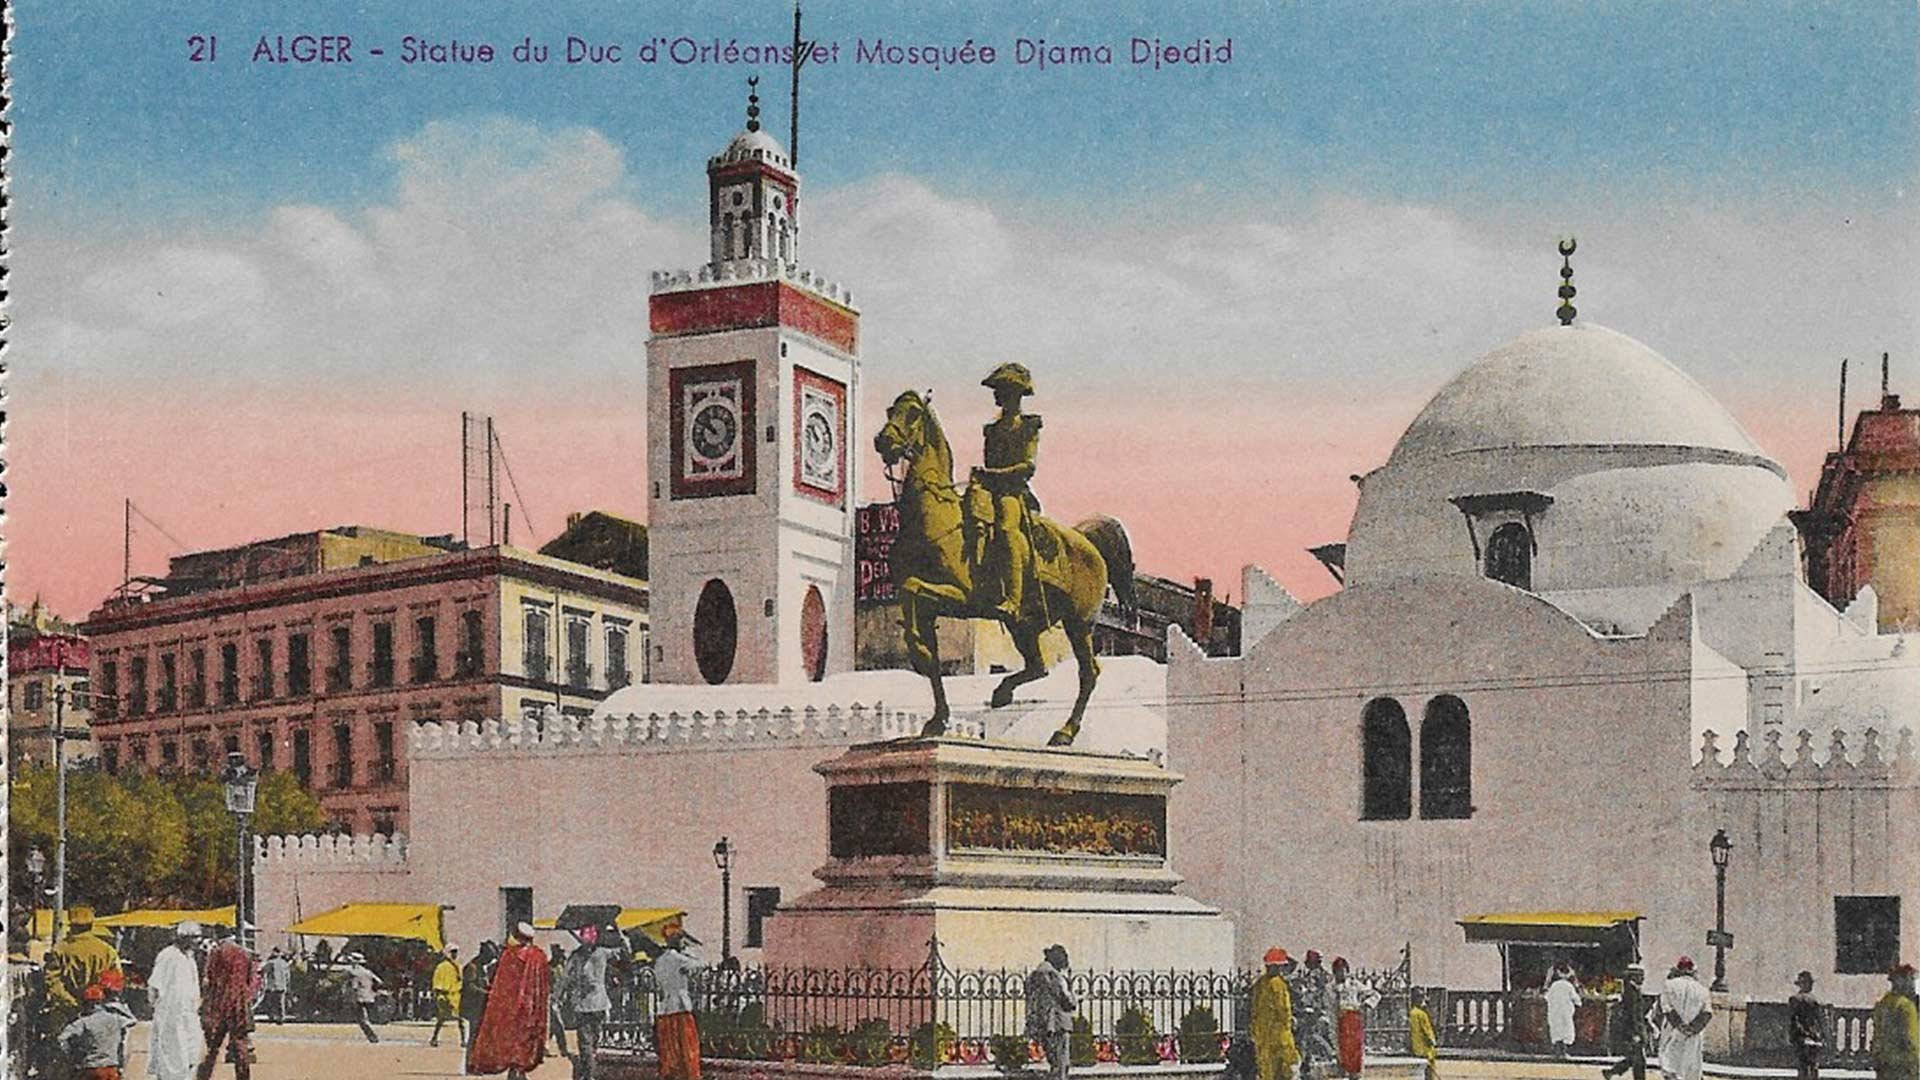 Algiers to Neuilly The Duc dOrlans Statue Pieds Noirs 1920x1080